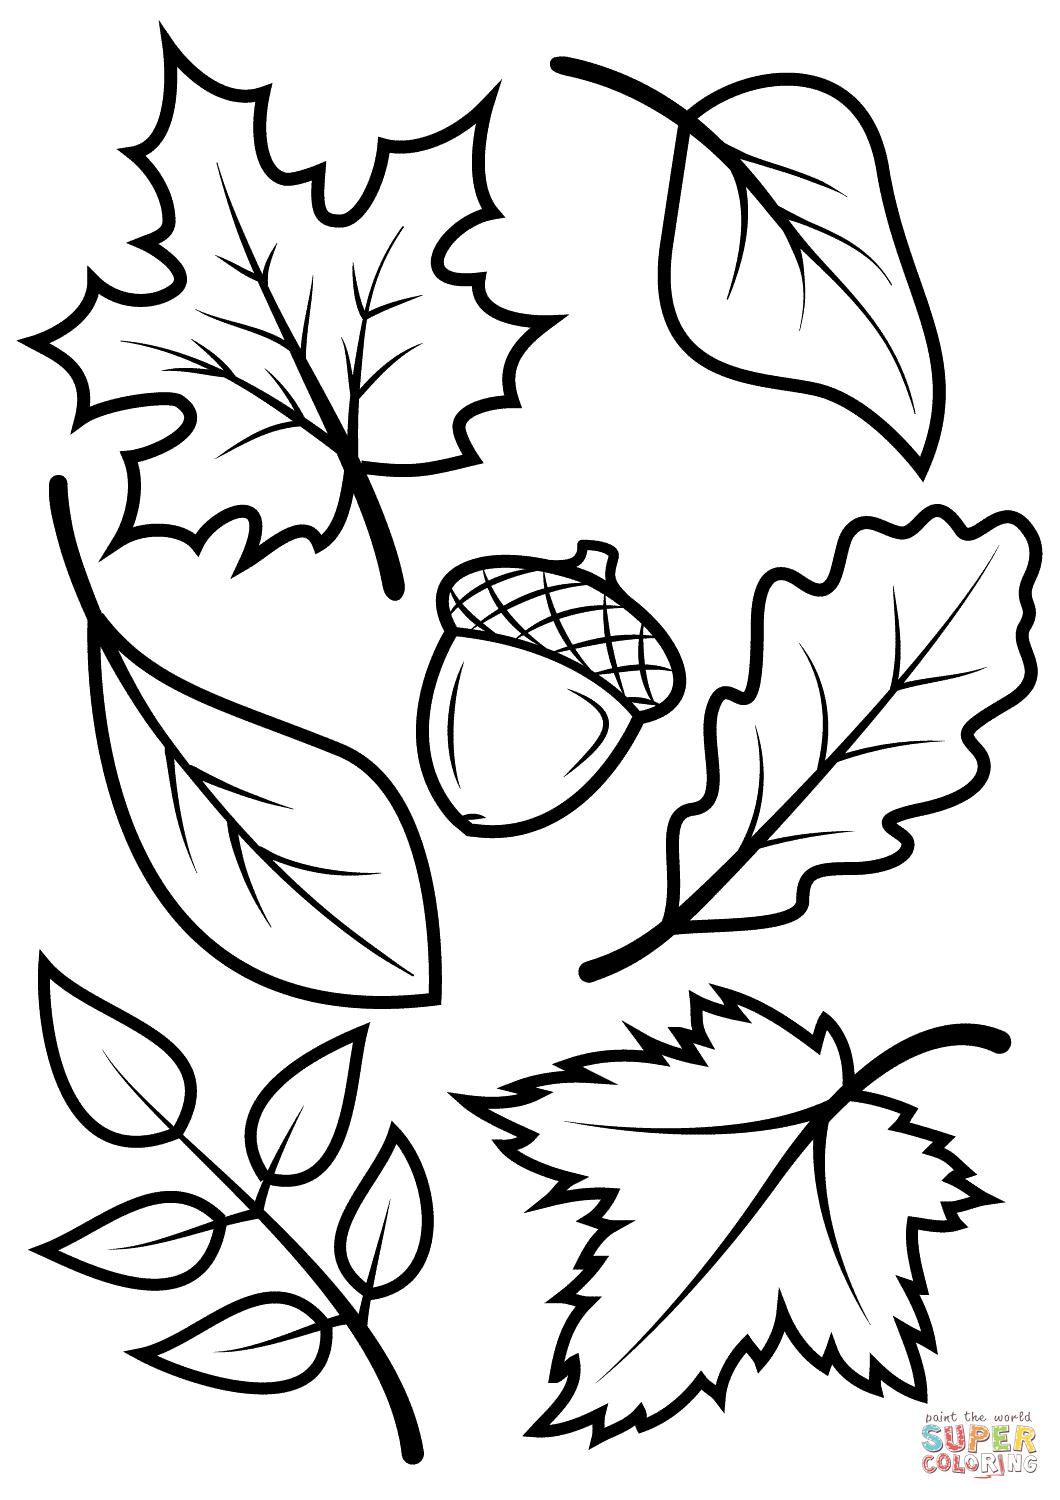 Fall Leaves And Acorn Coloring Page   Free Printable Coloring Pages - Free Printable Leaf Coloring Pages